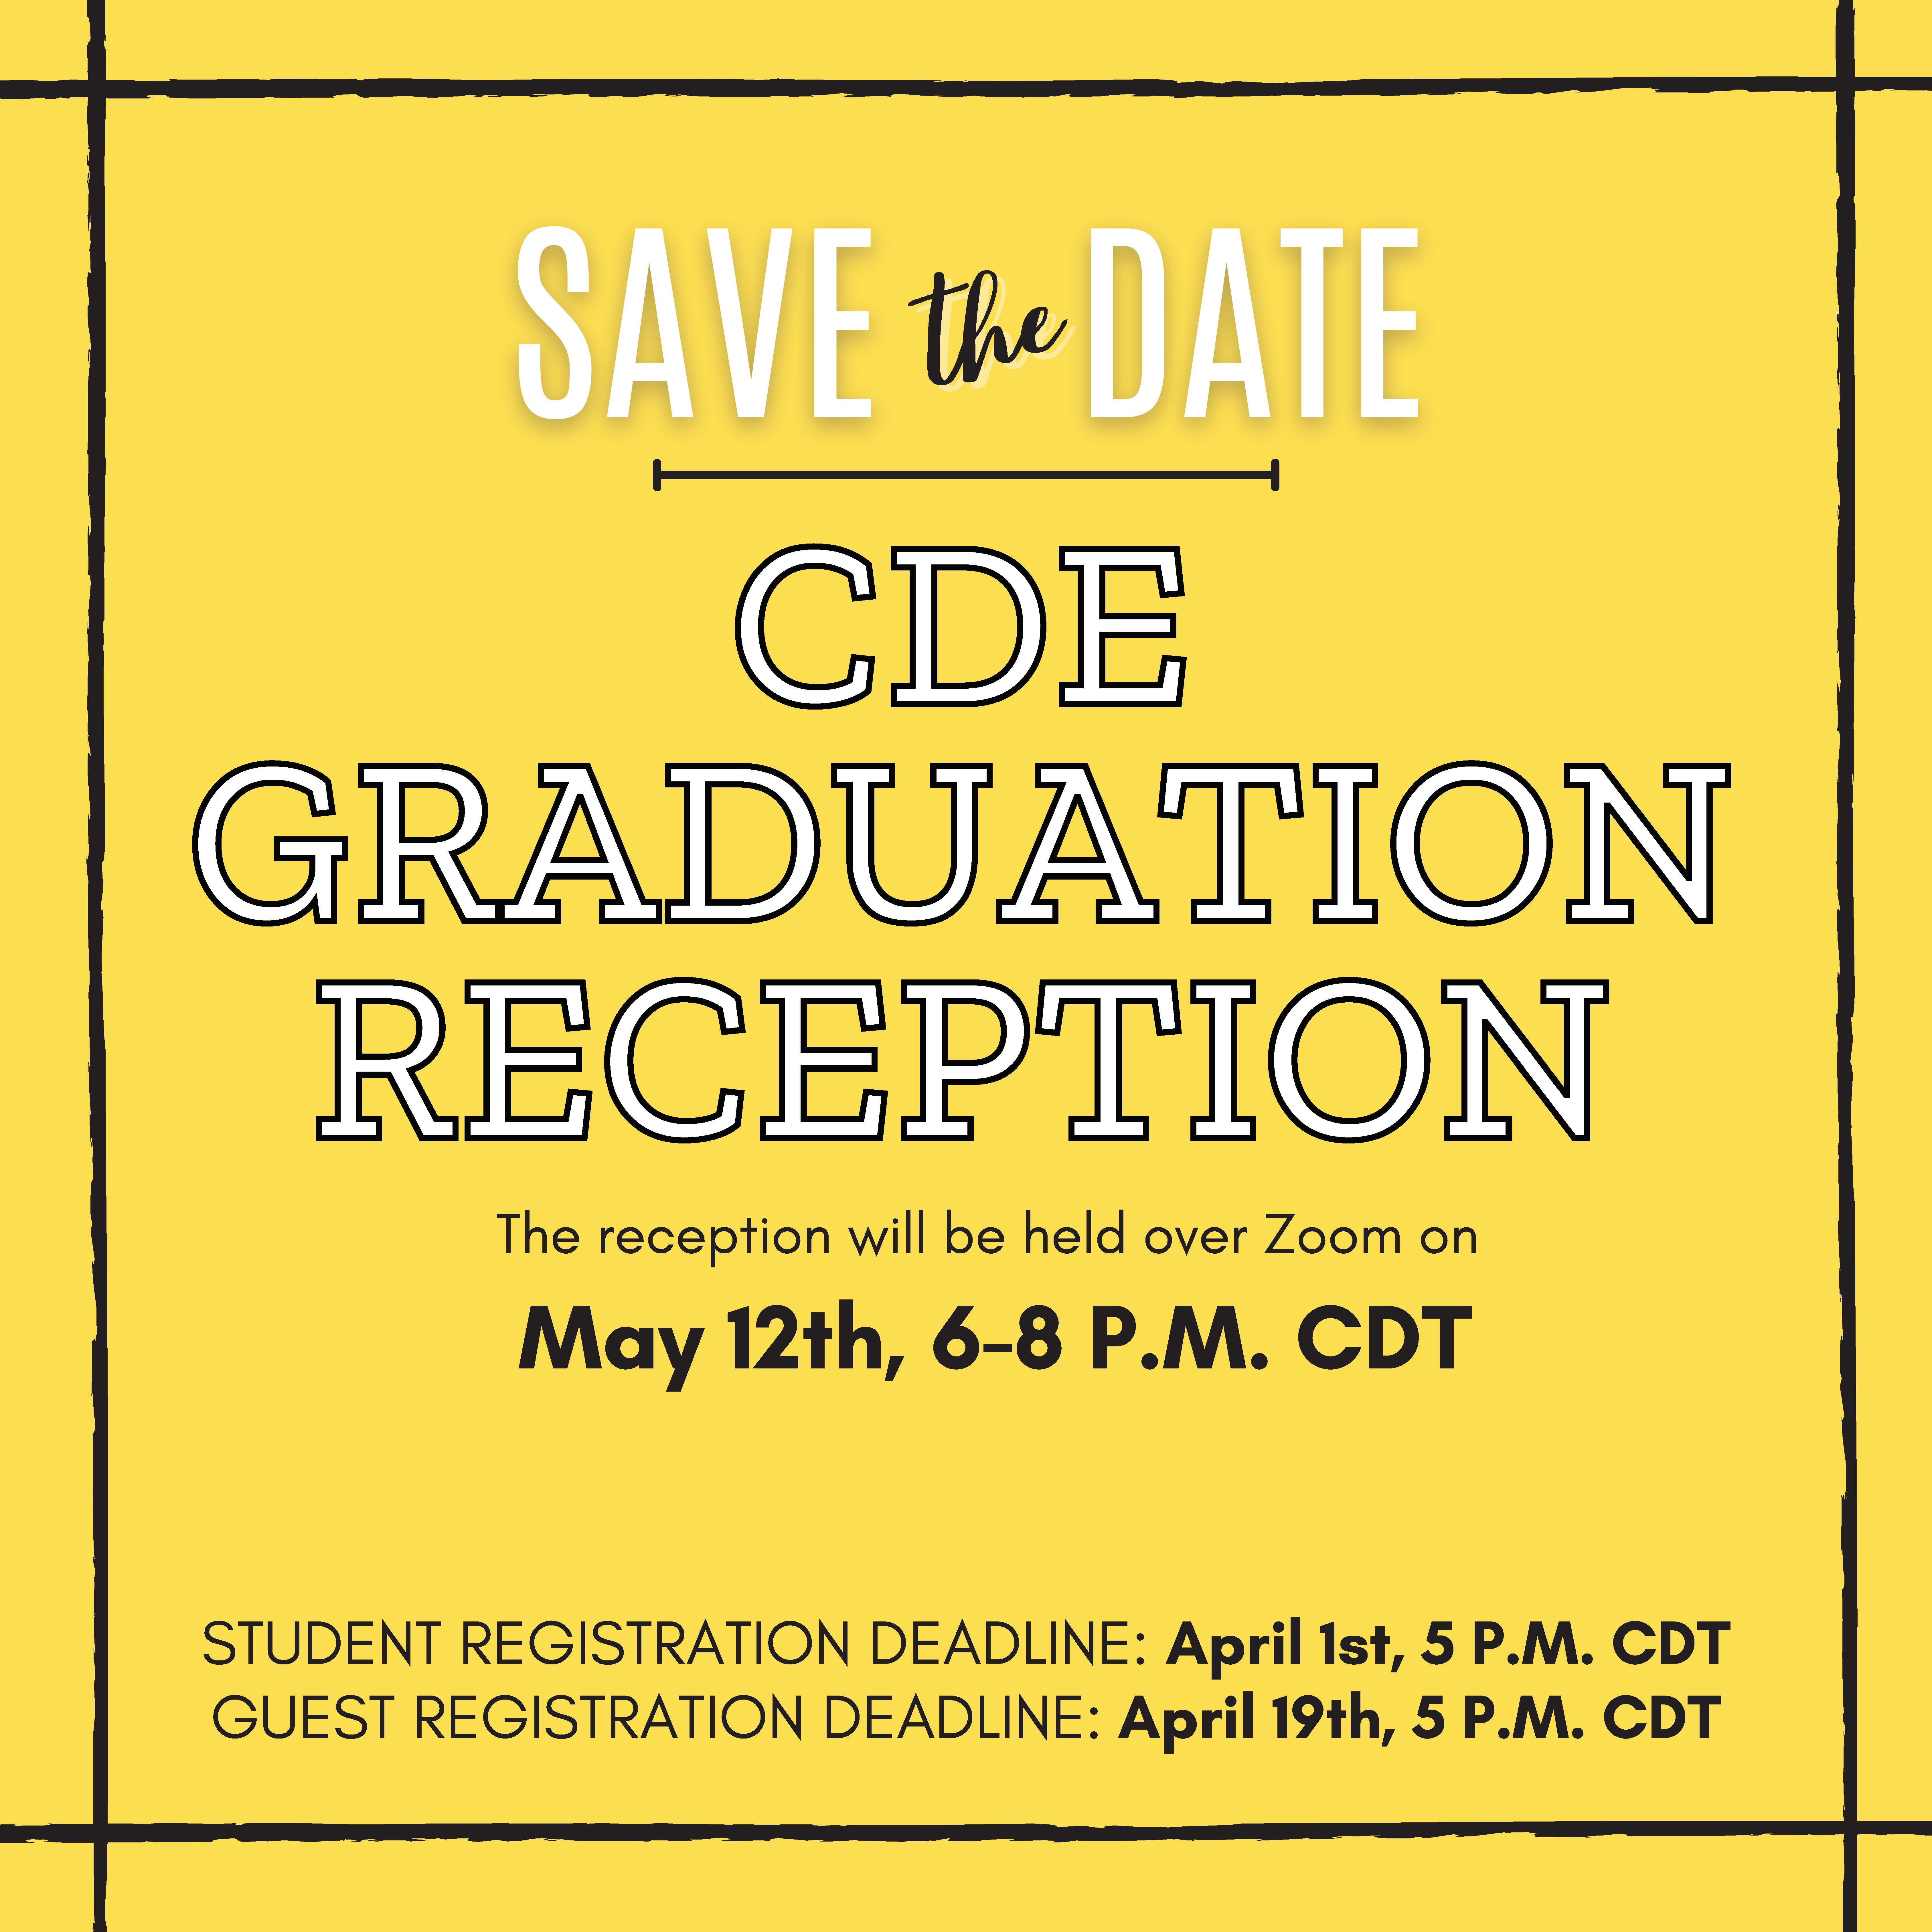 Save the Date for CDE Graduation Reception 2021. The reception will be held over Zoom on May 12th, 6-8pm CDT. Student registration deadline: April 1st, 5pm CDT. Guest registration deadline: April 19th, 5pm CDT.